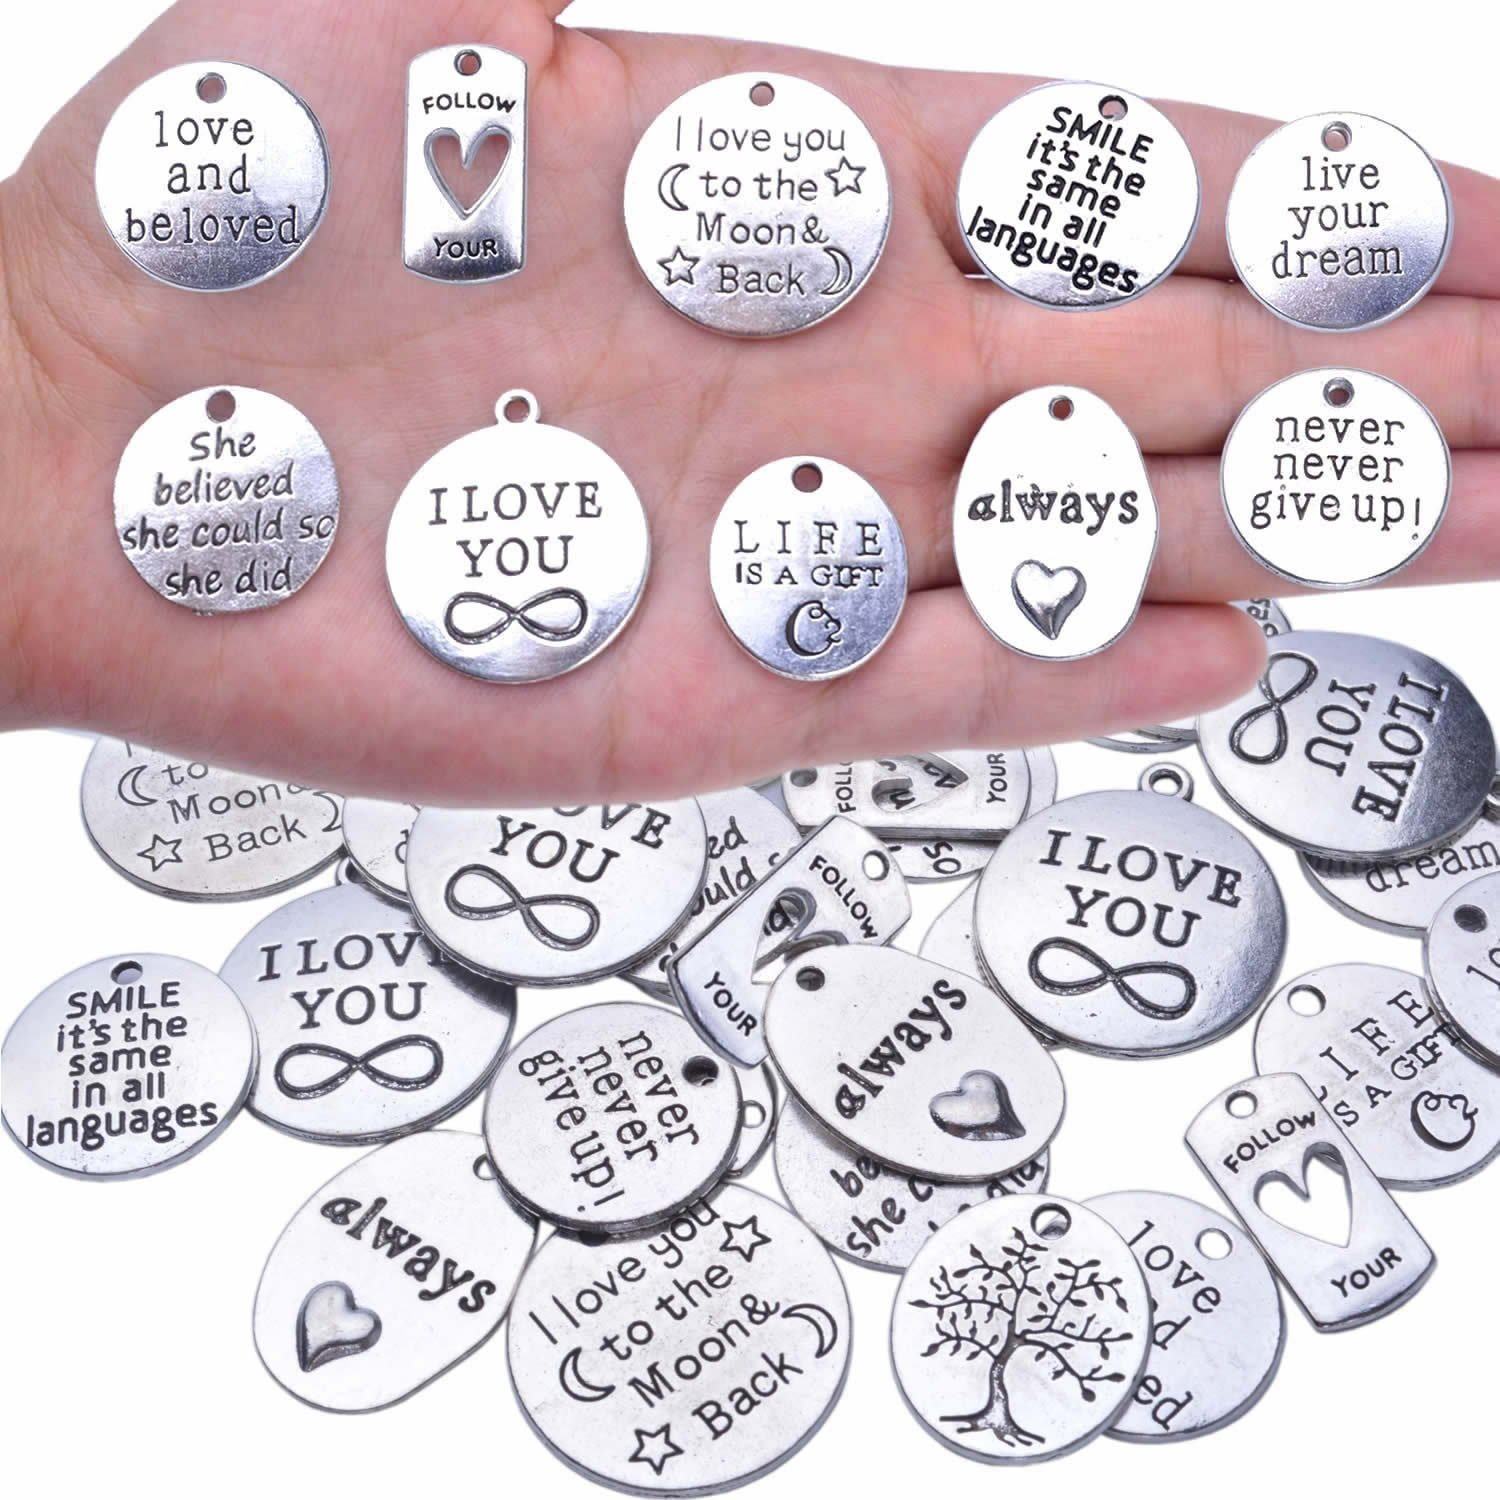 BronaGrand 40pcs Inspiration Words Charms Craft Supplies Beads Charms Pendants for Crafting, Jewelry Findings Making Accessory For DIY Necklace Bracelet 4336819444